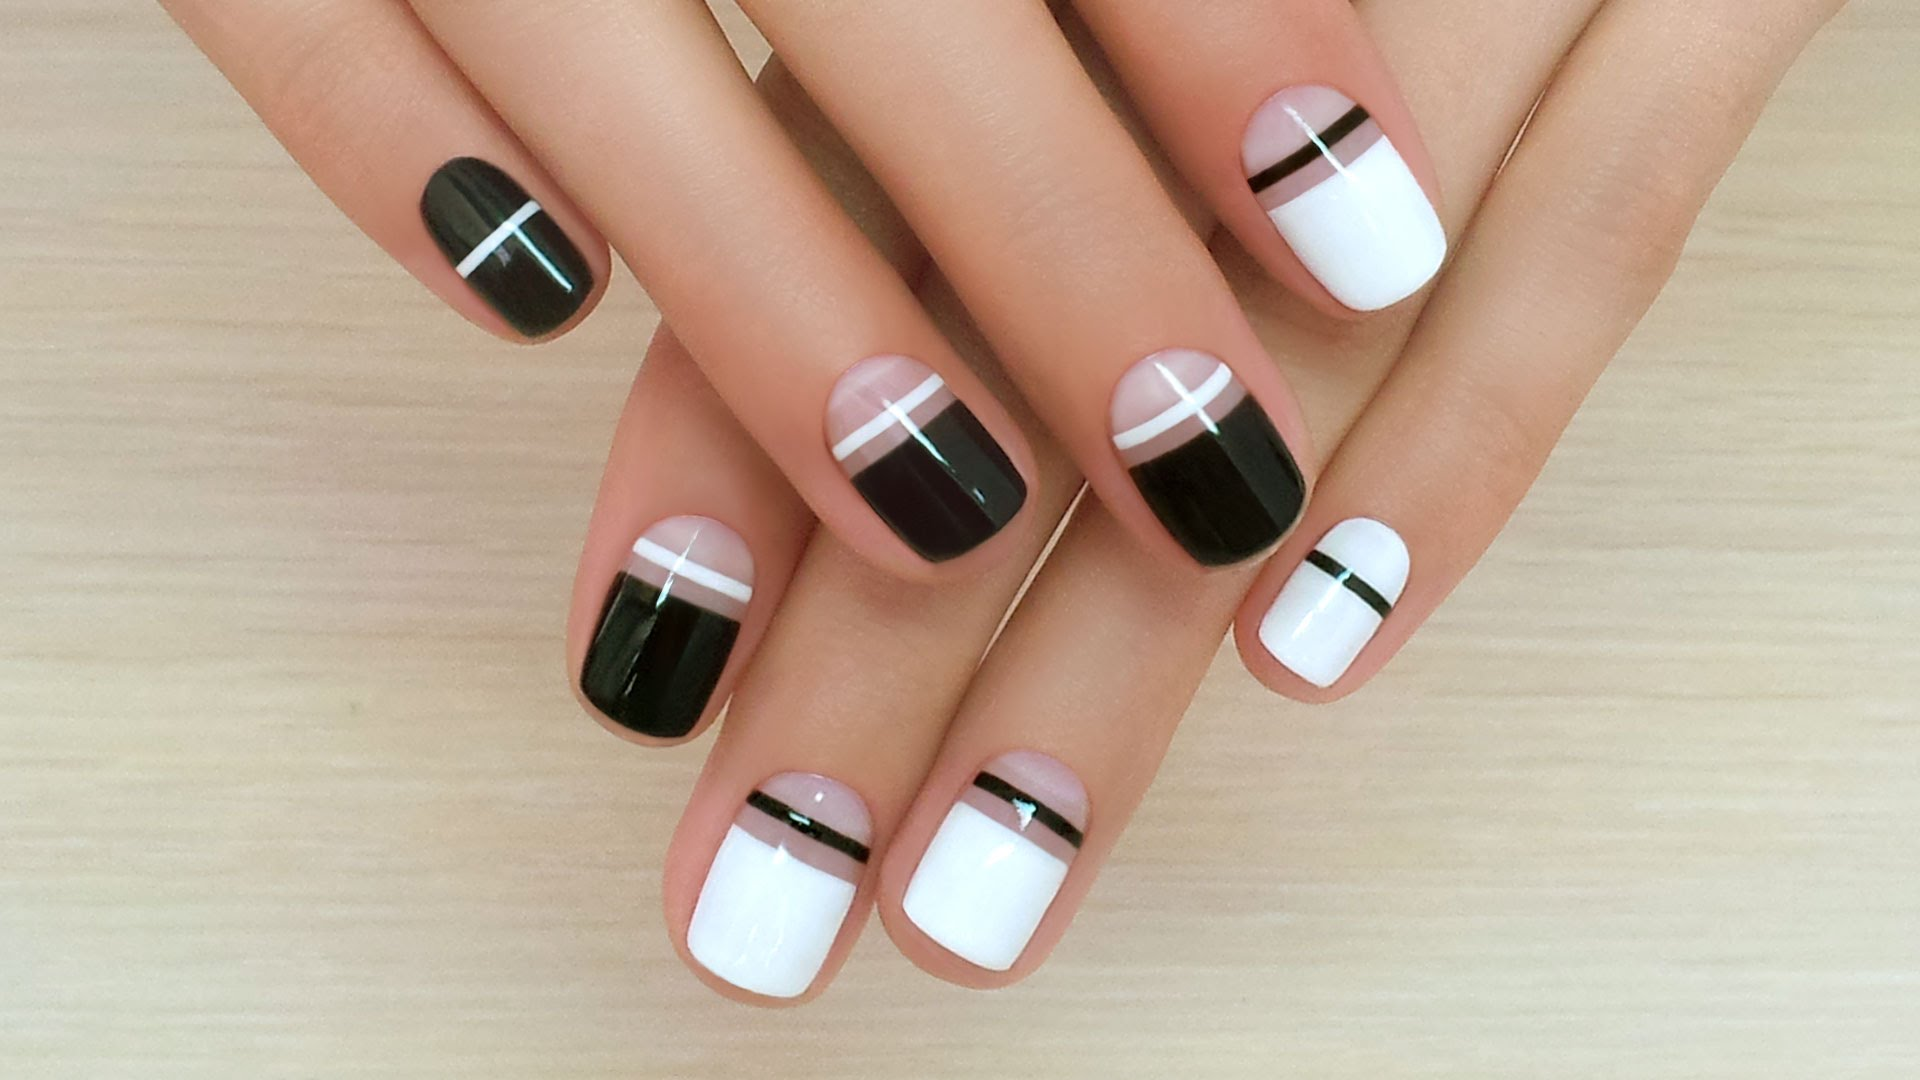 Black dress nails - Nails By Black And White Dress Photo